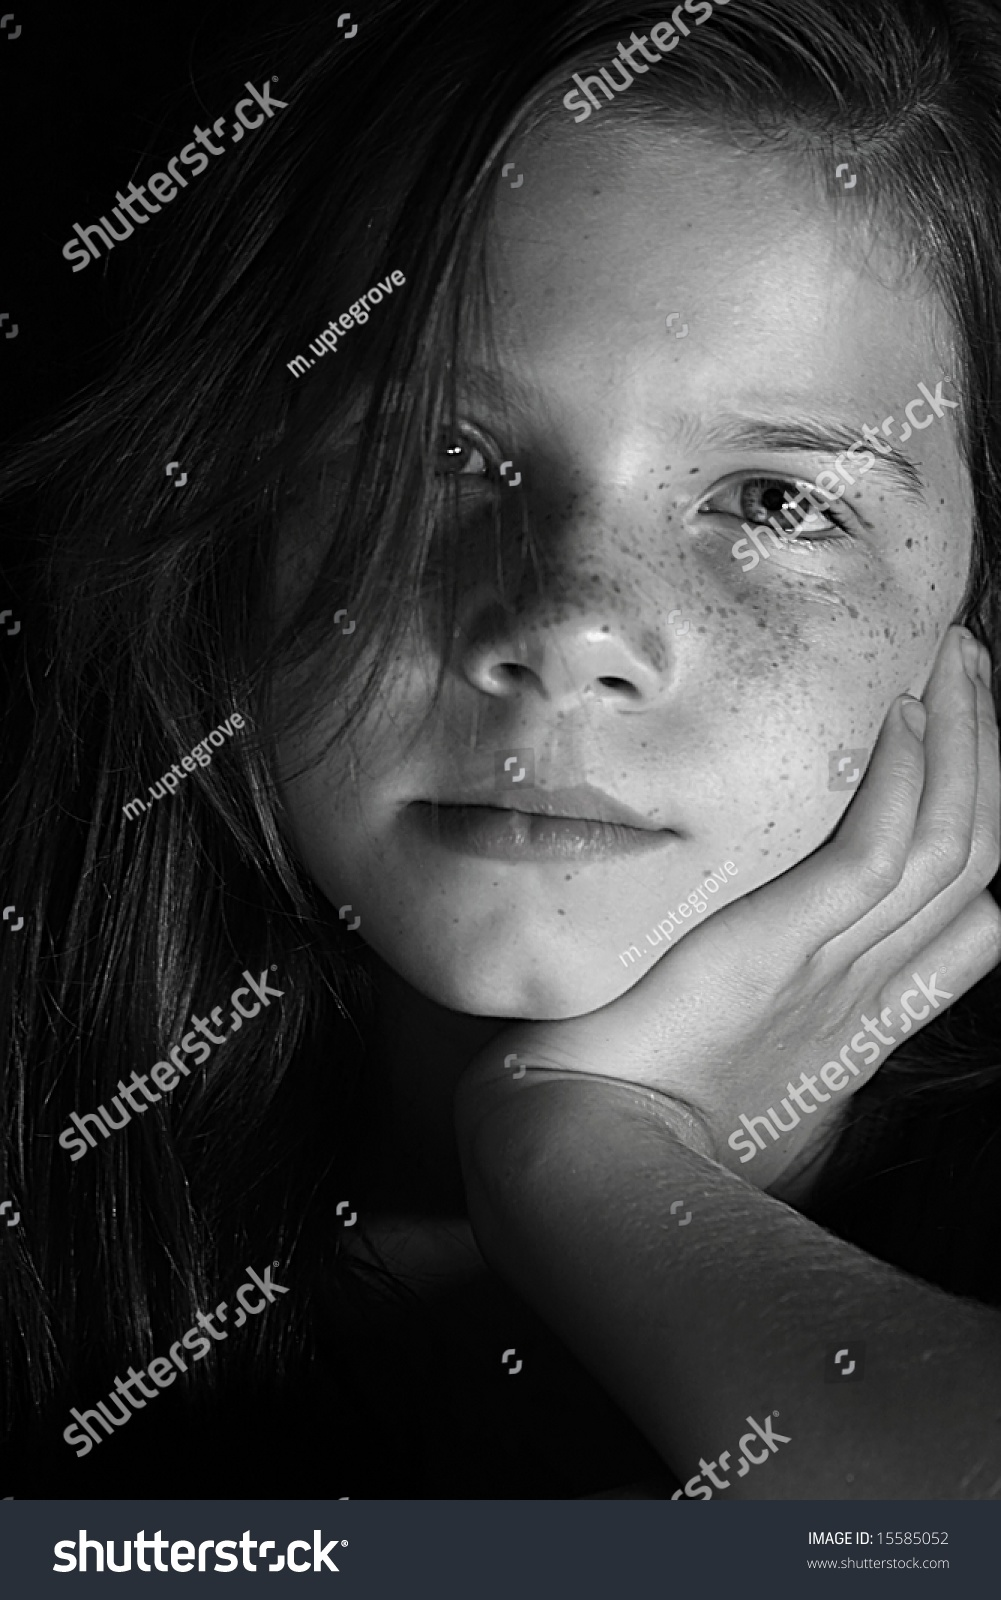 portrait of young beautiful girl black and white photo with dramatic lighting  sc 1 st  Shutterstock & Portrait Young Beautiful Girl Black White Stock Photo 15585052 ... azcodes.com